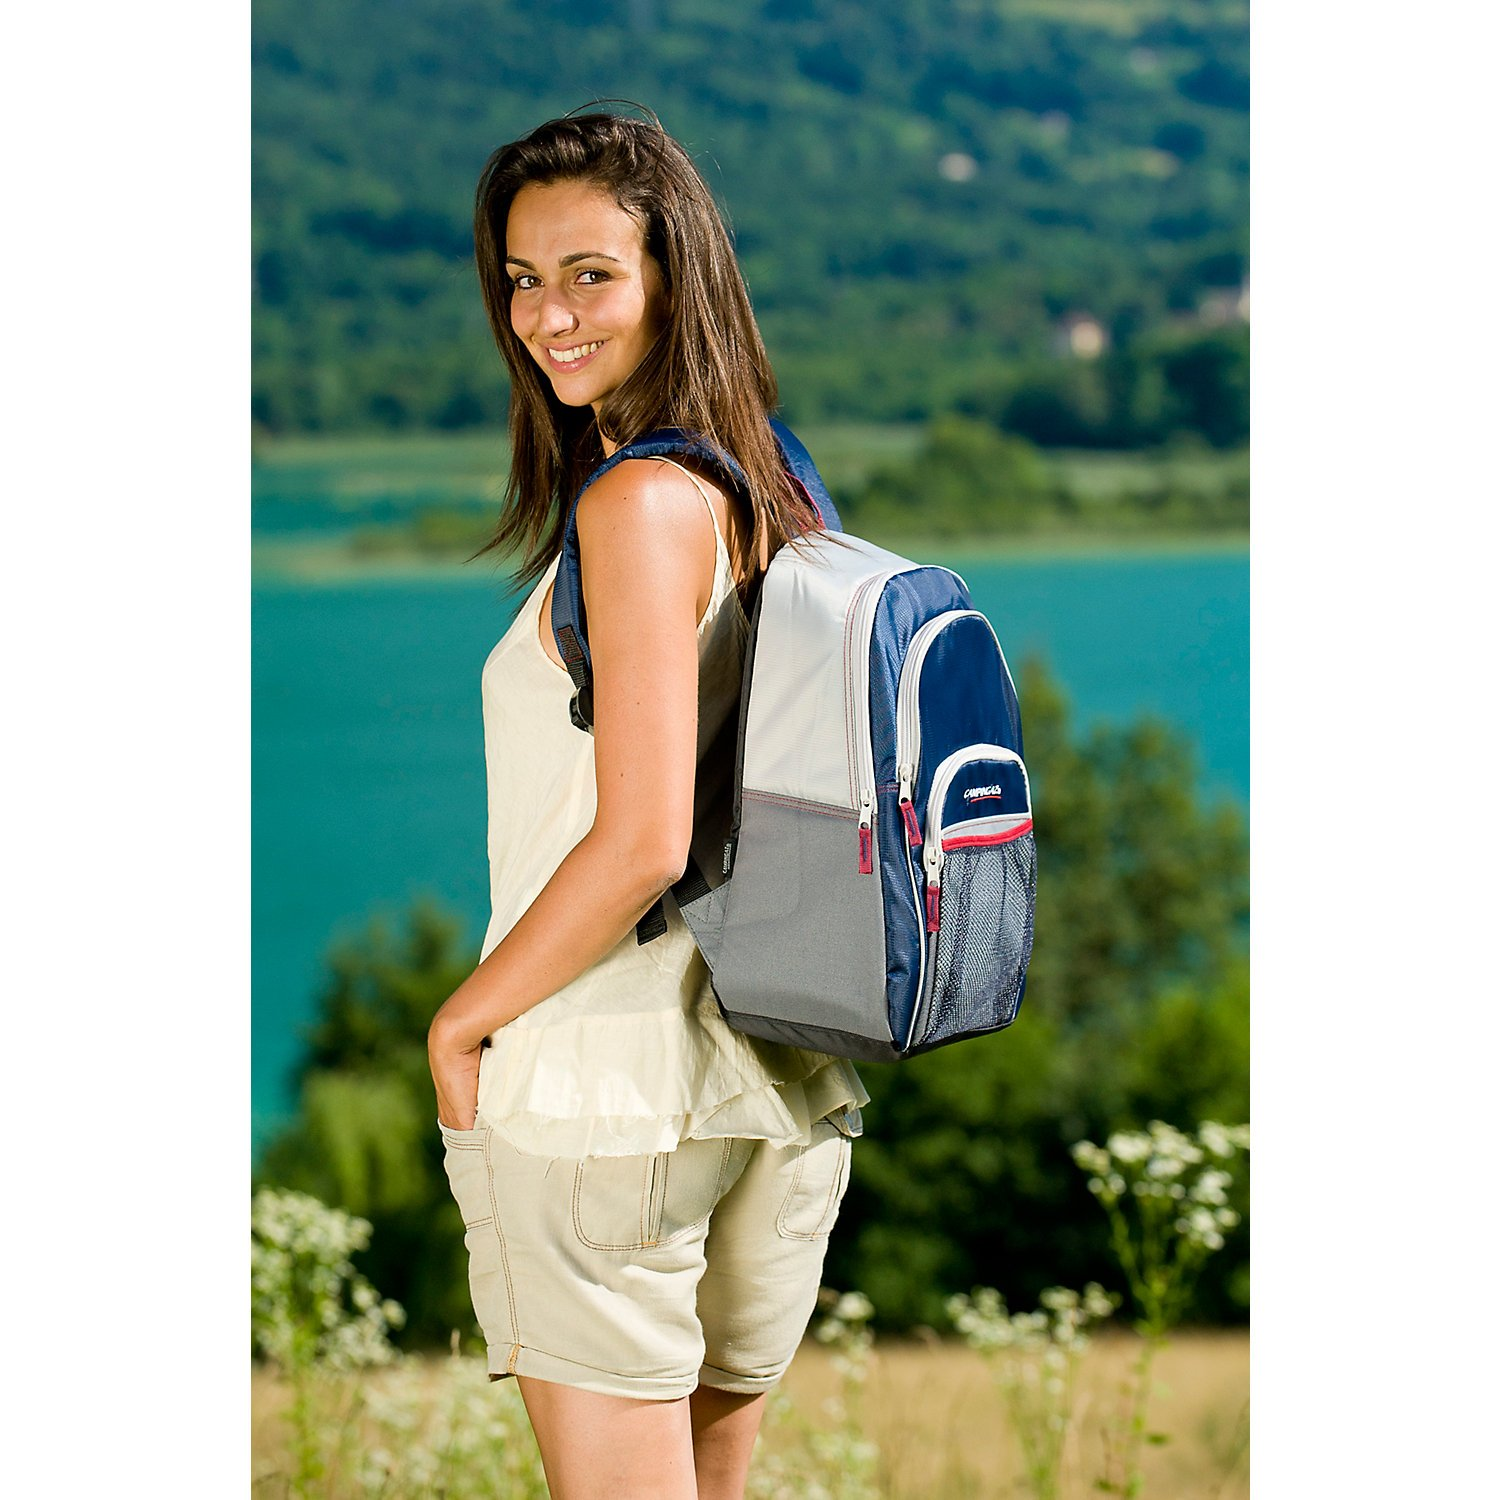 Nevera flexible Campingaz Backpack 14 litros por sólo 24,90€